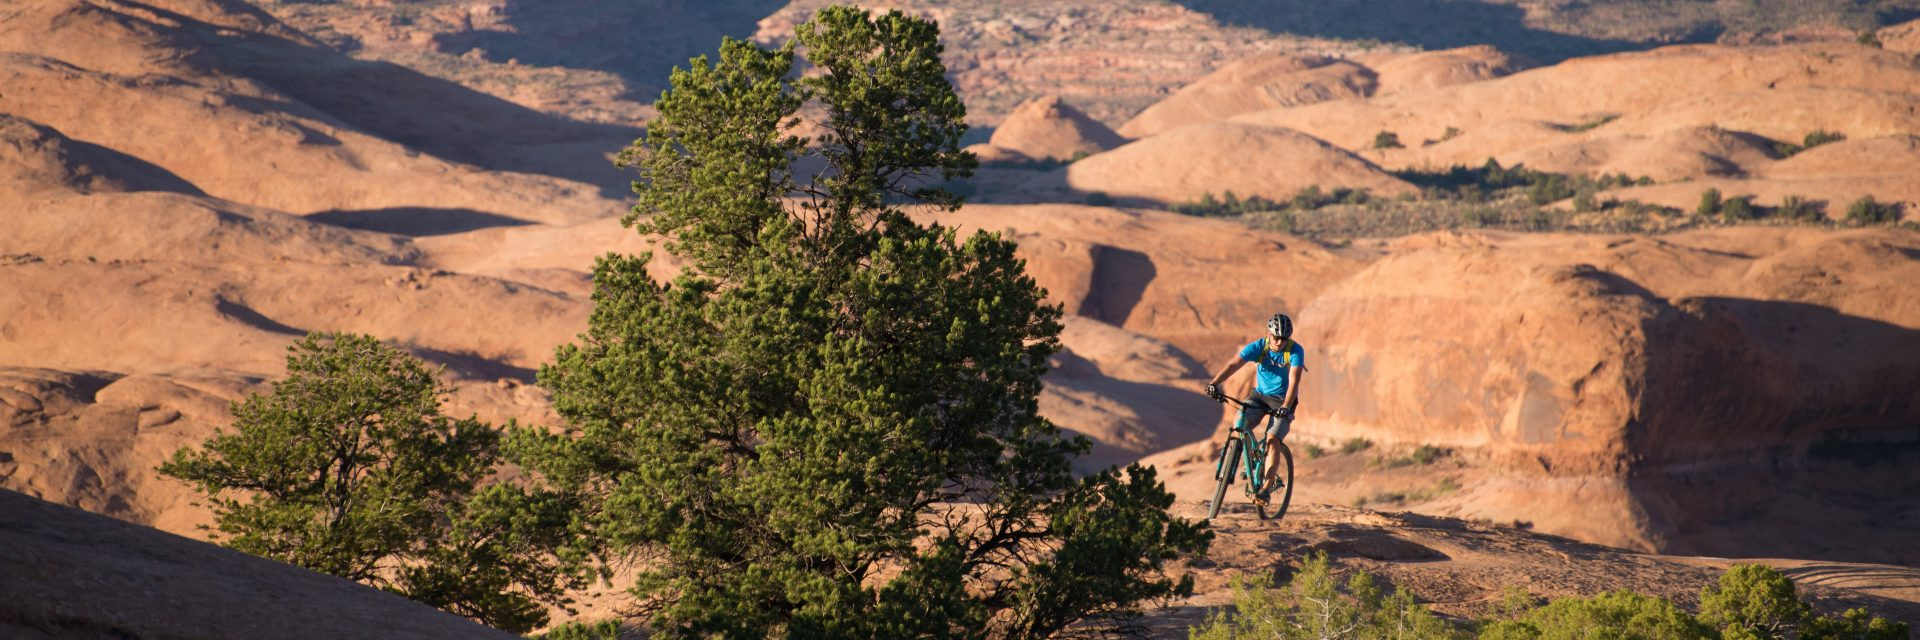 A rider finishes The Practice Loop section of The Slickrock Bike Trail near Moab, UT as the sun sets over Canyonlands National Park